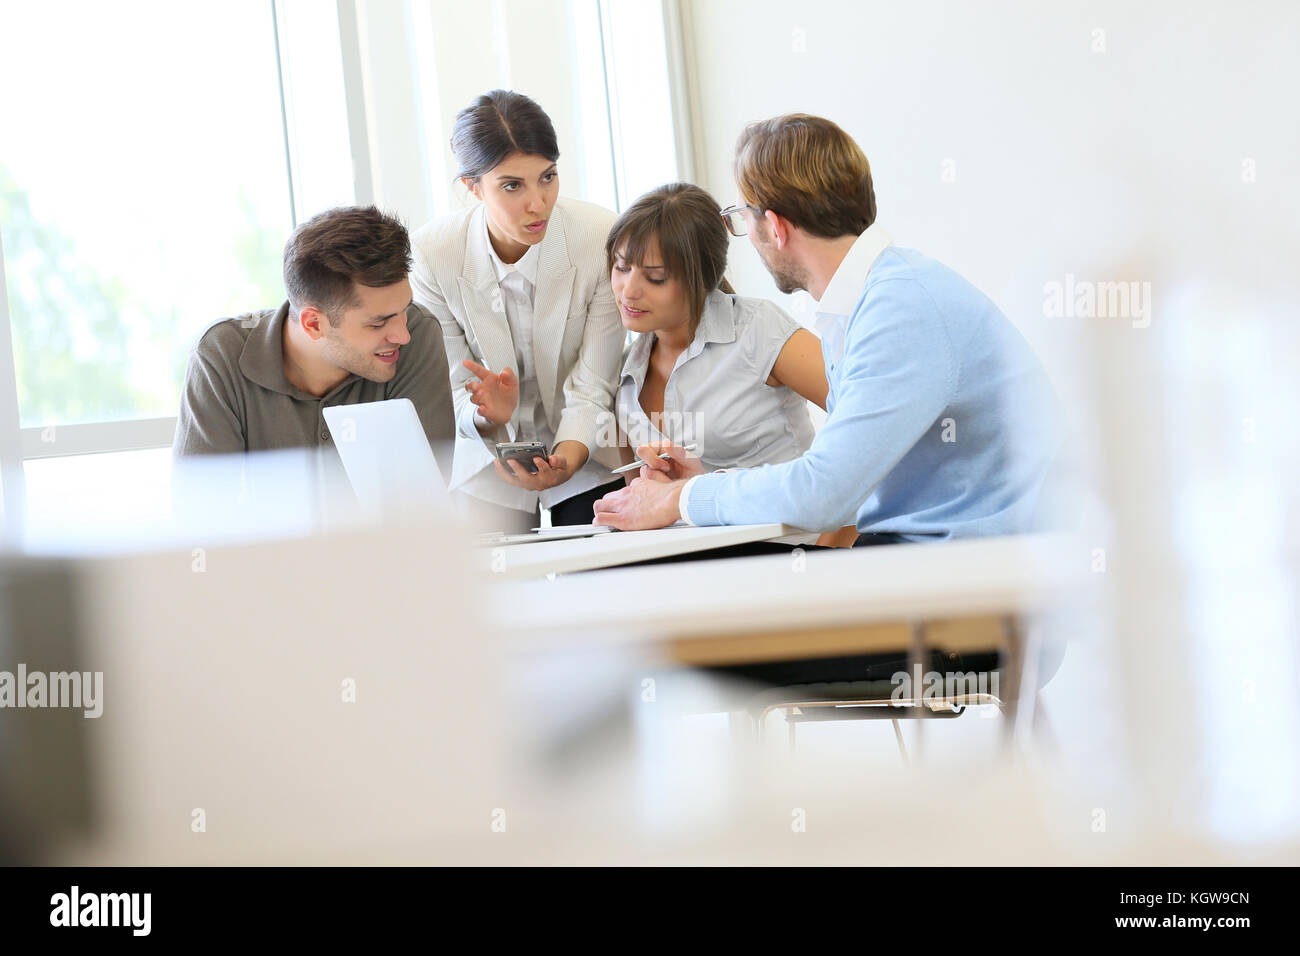 Business people meeting around table - Stock Image